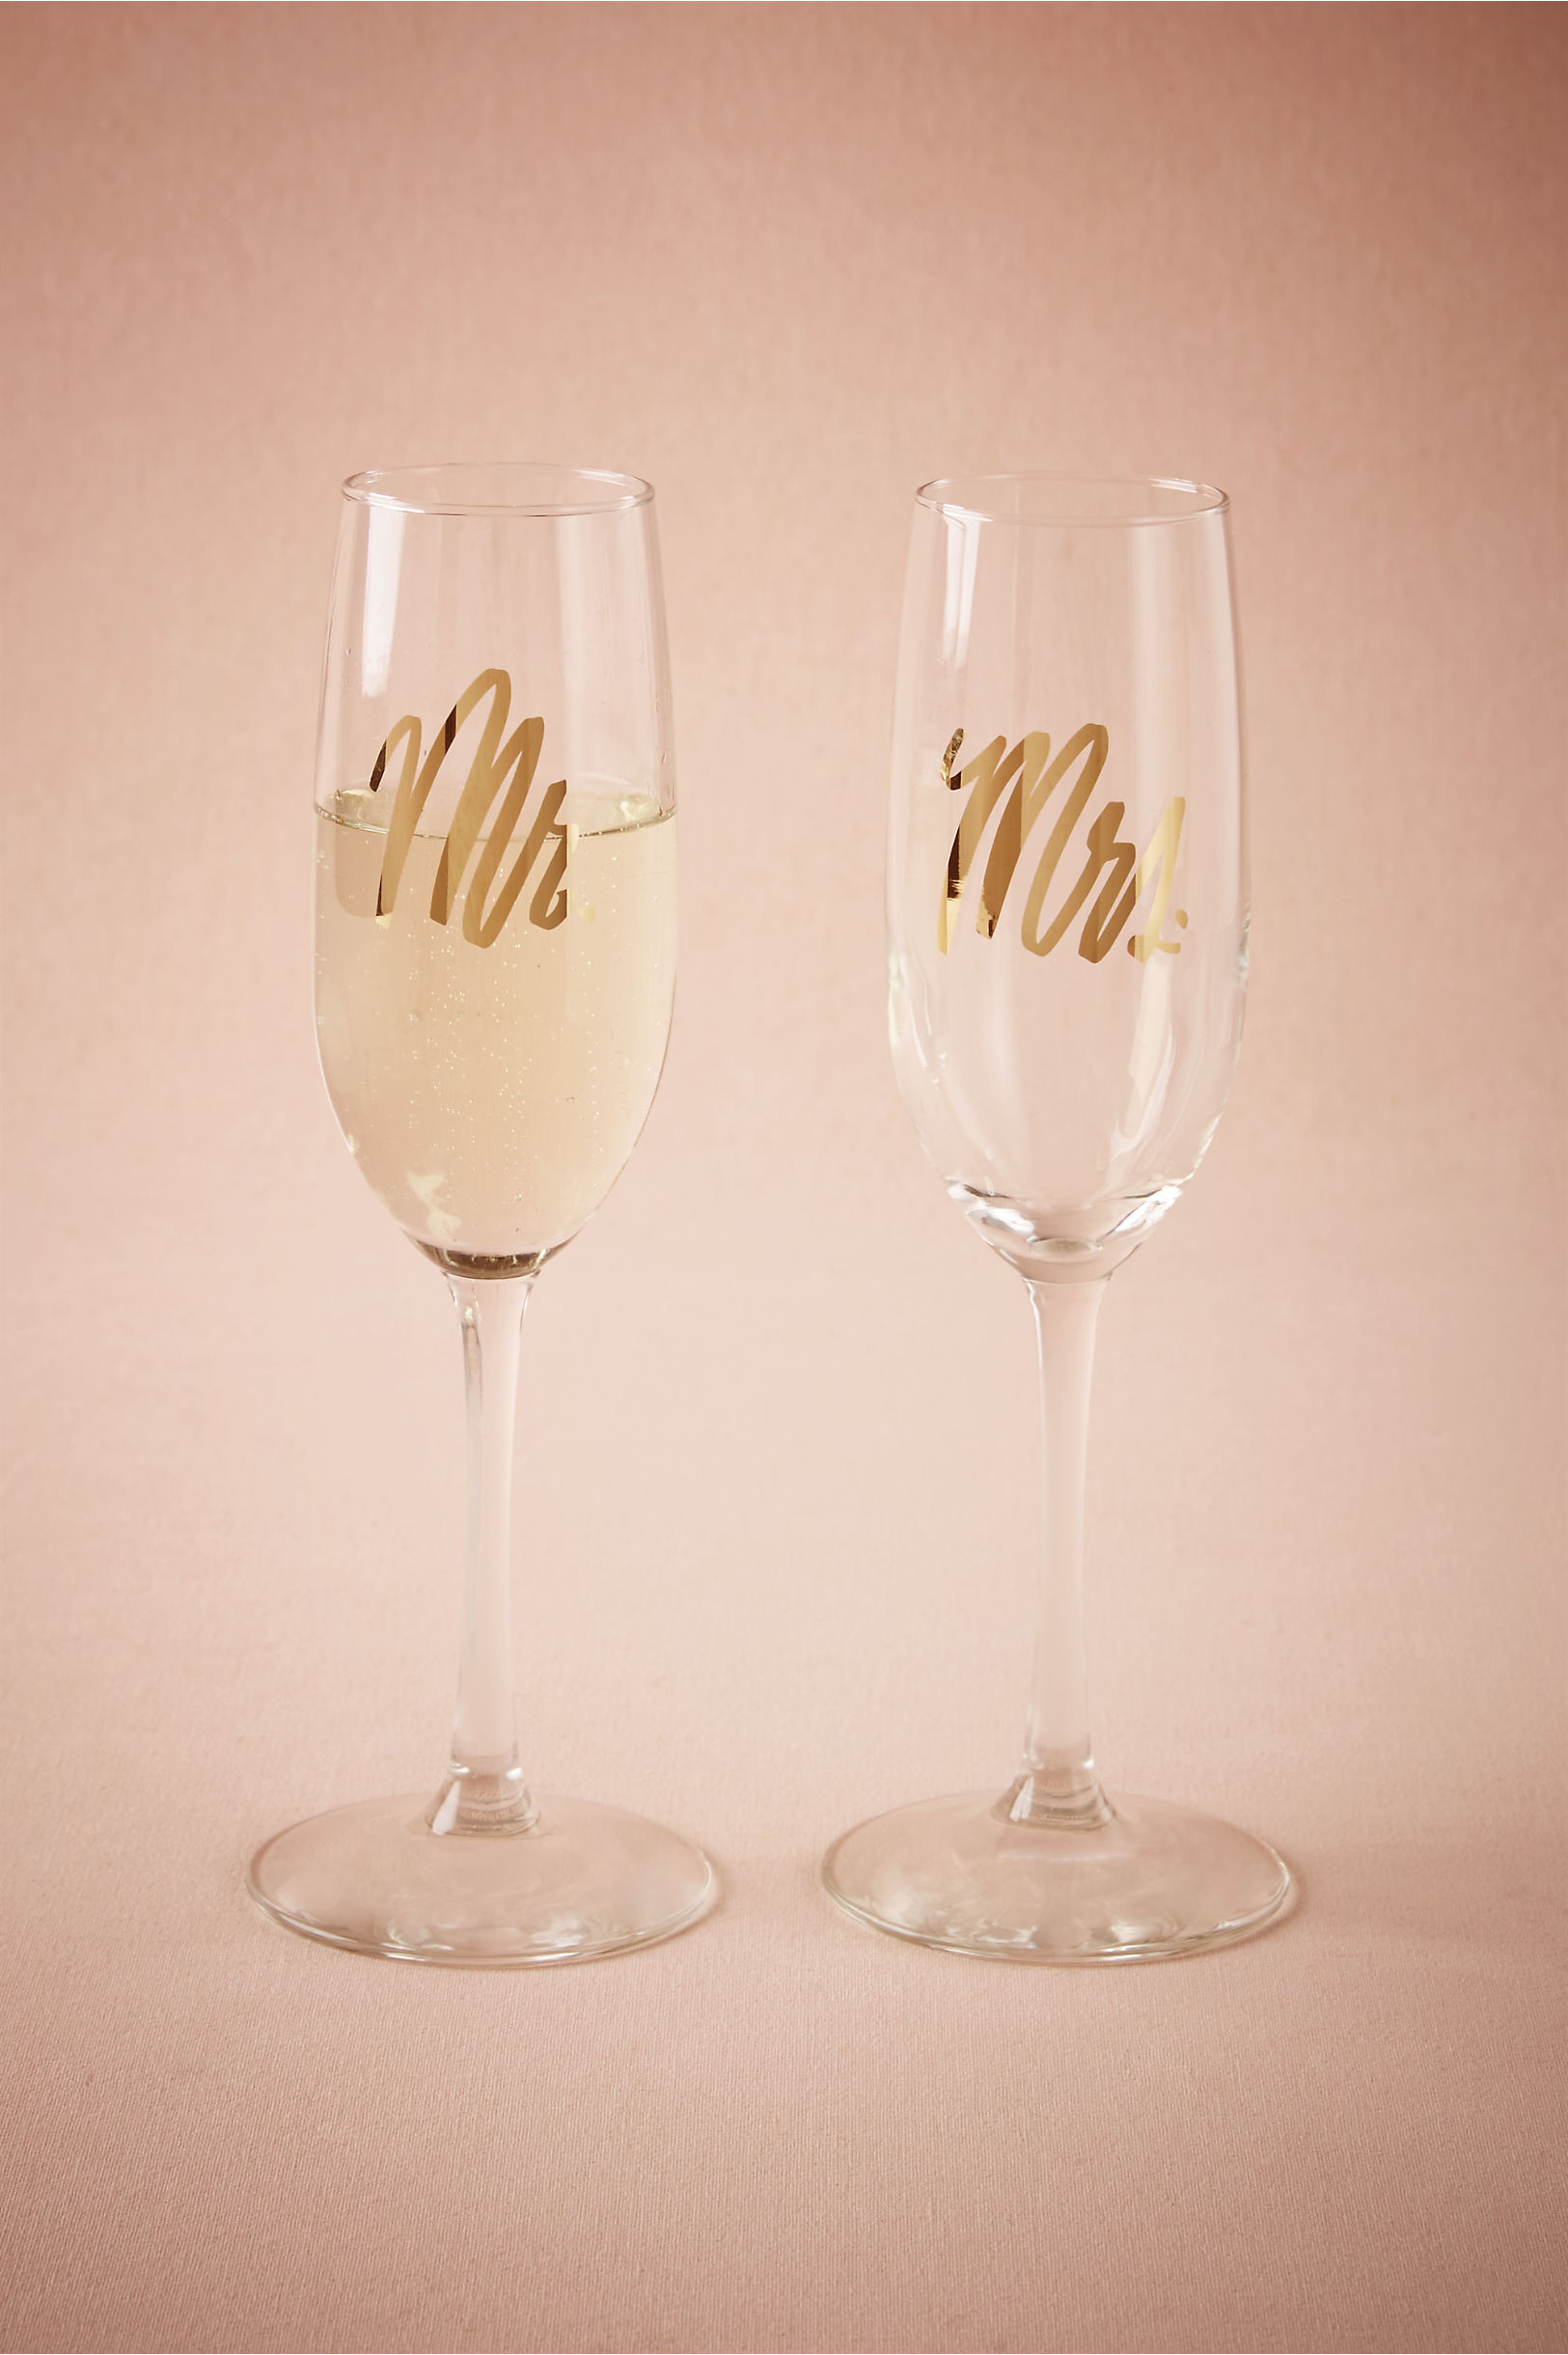 mrmrs mr u0026 mrs champagne flutes 2 bhldn